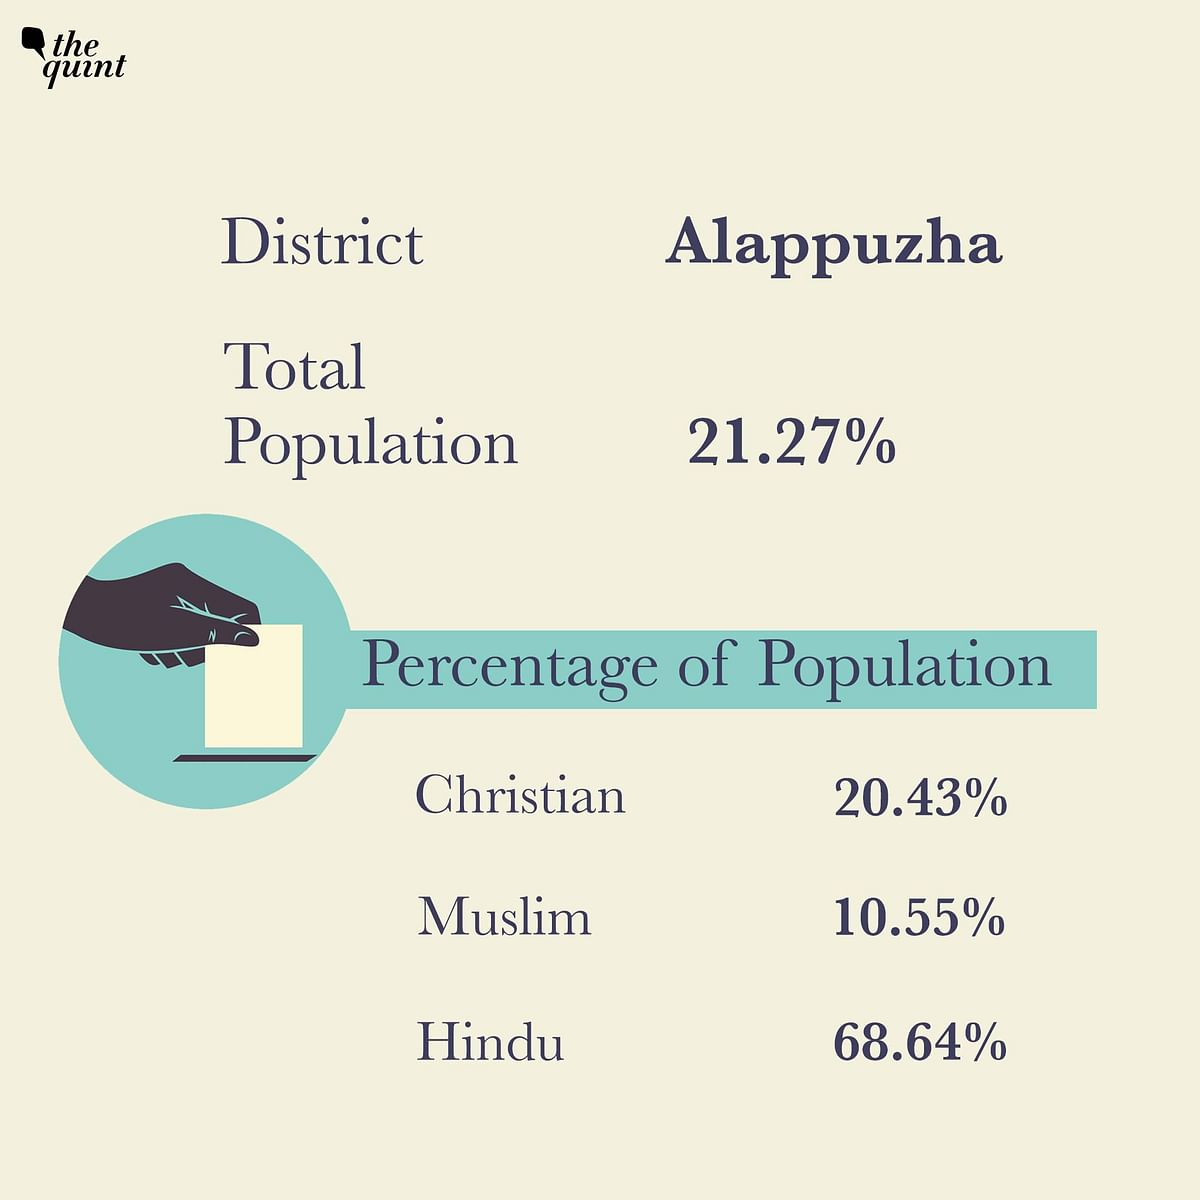 Christians form 20.43 per cent of the population in Alappuzha district.